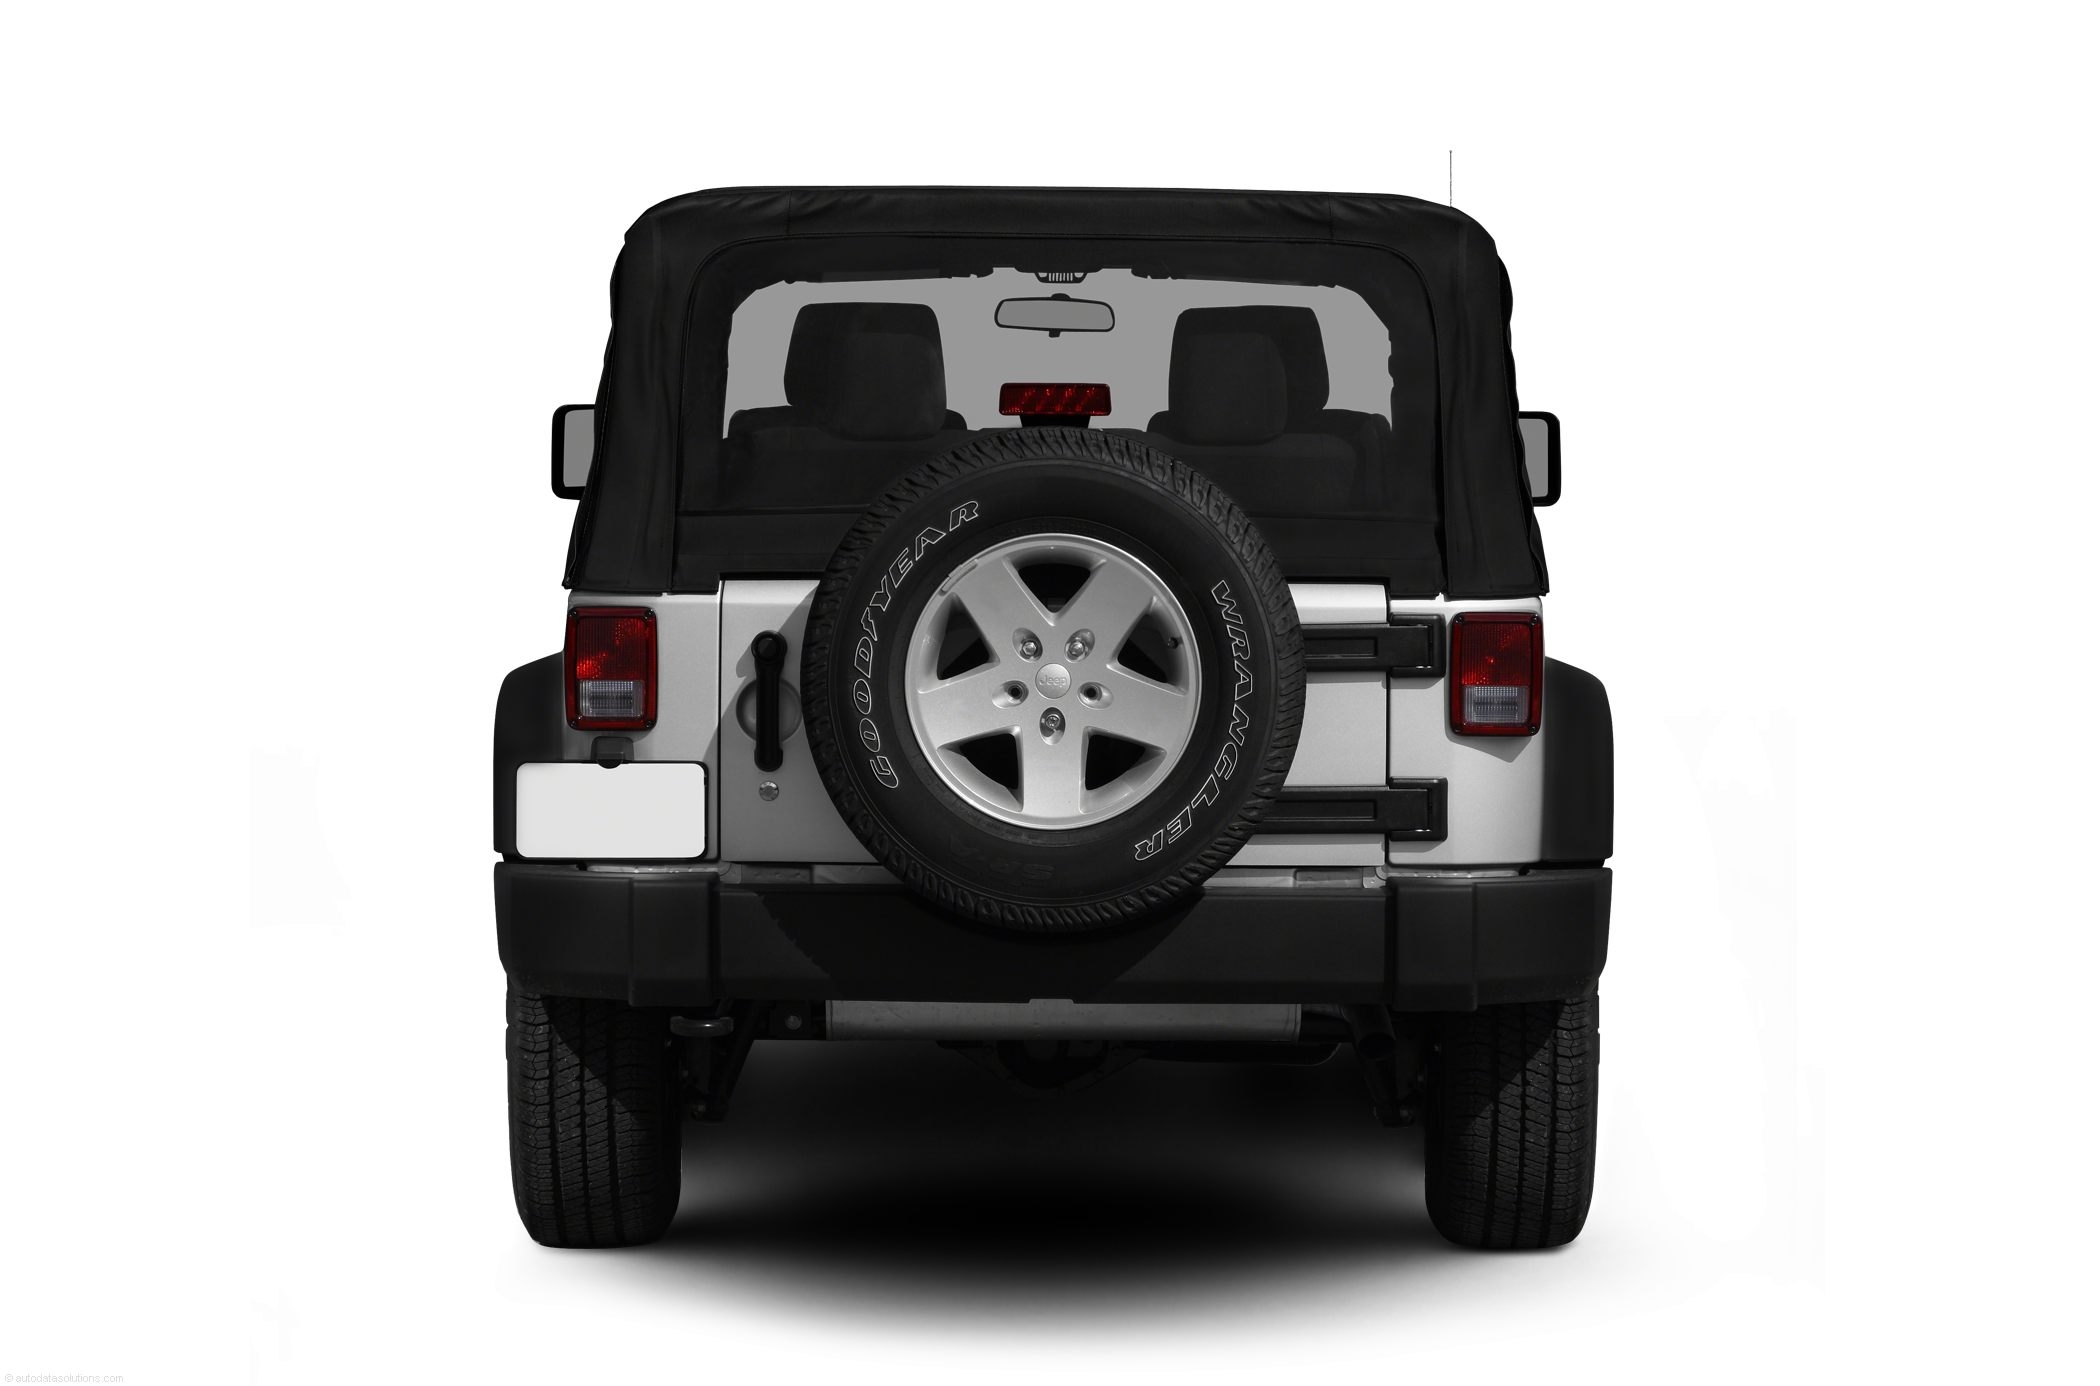 top rubicon invoice price black amp white images for pinterest jeep wrangler invoice price 2014